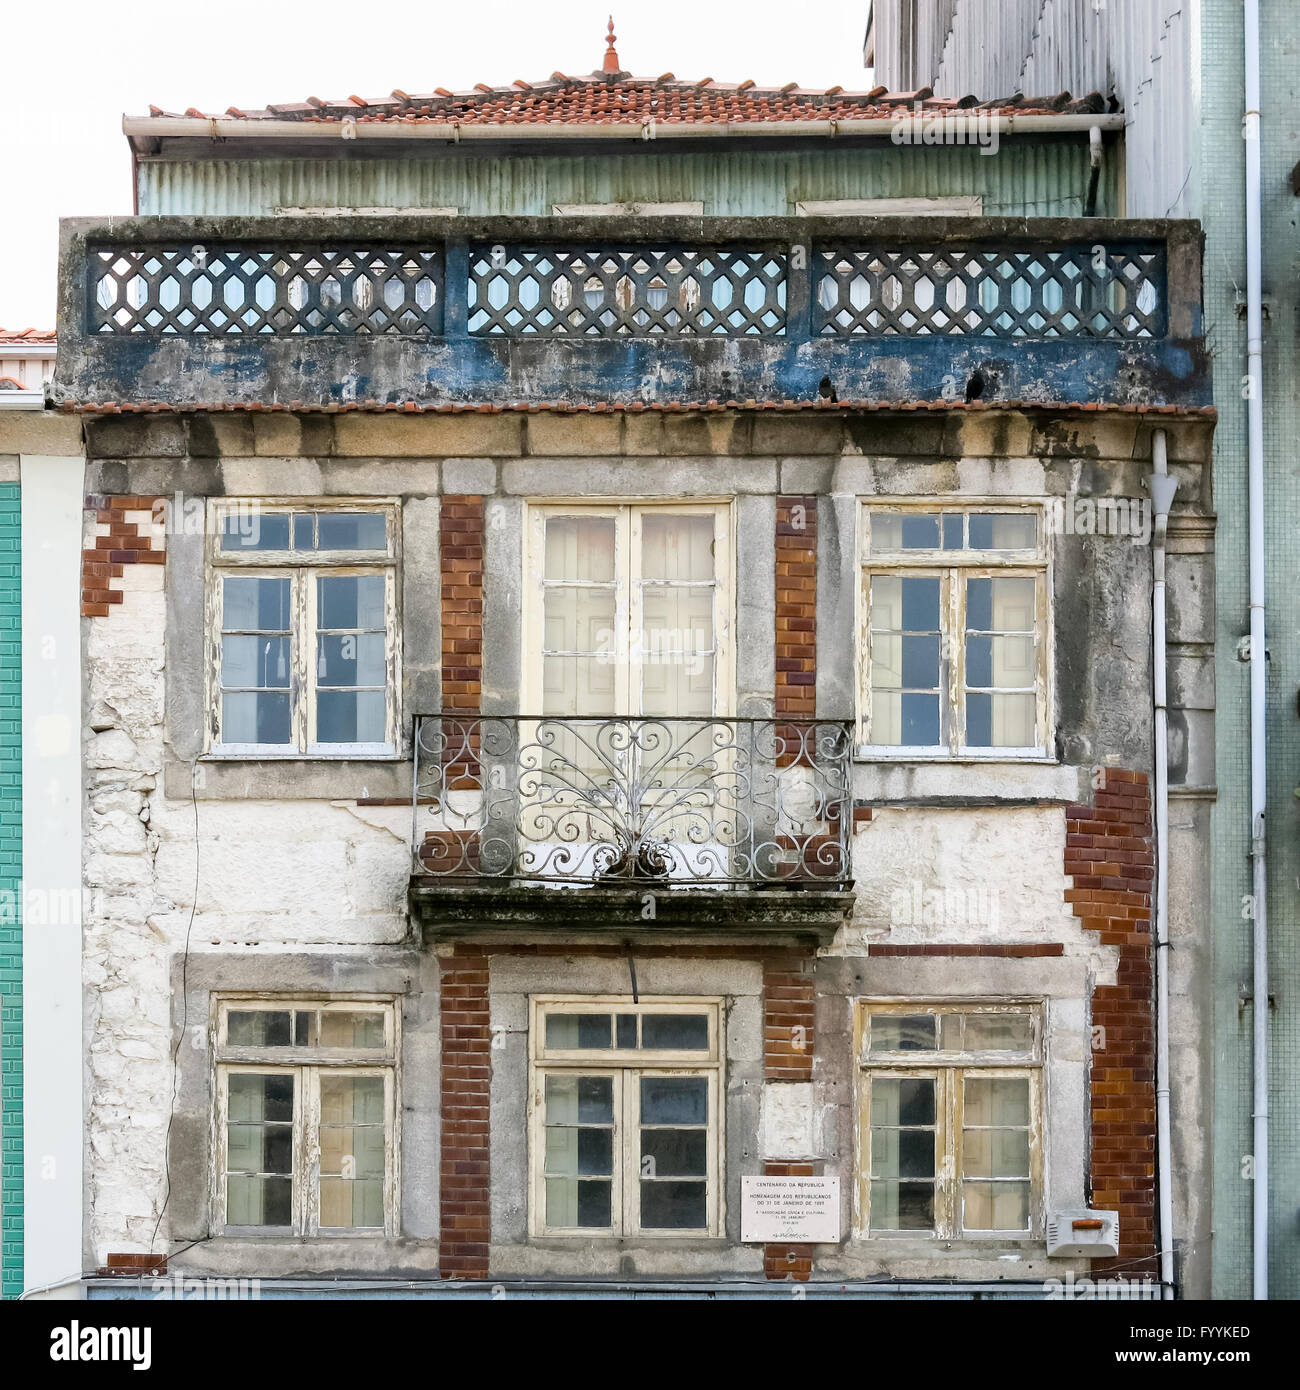 Facade of old deserted house in the city centre of Porto, Portugal - Stock Image